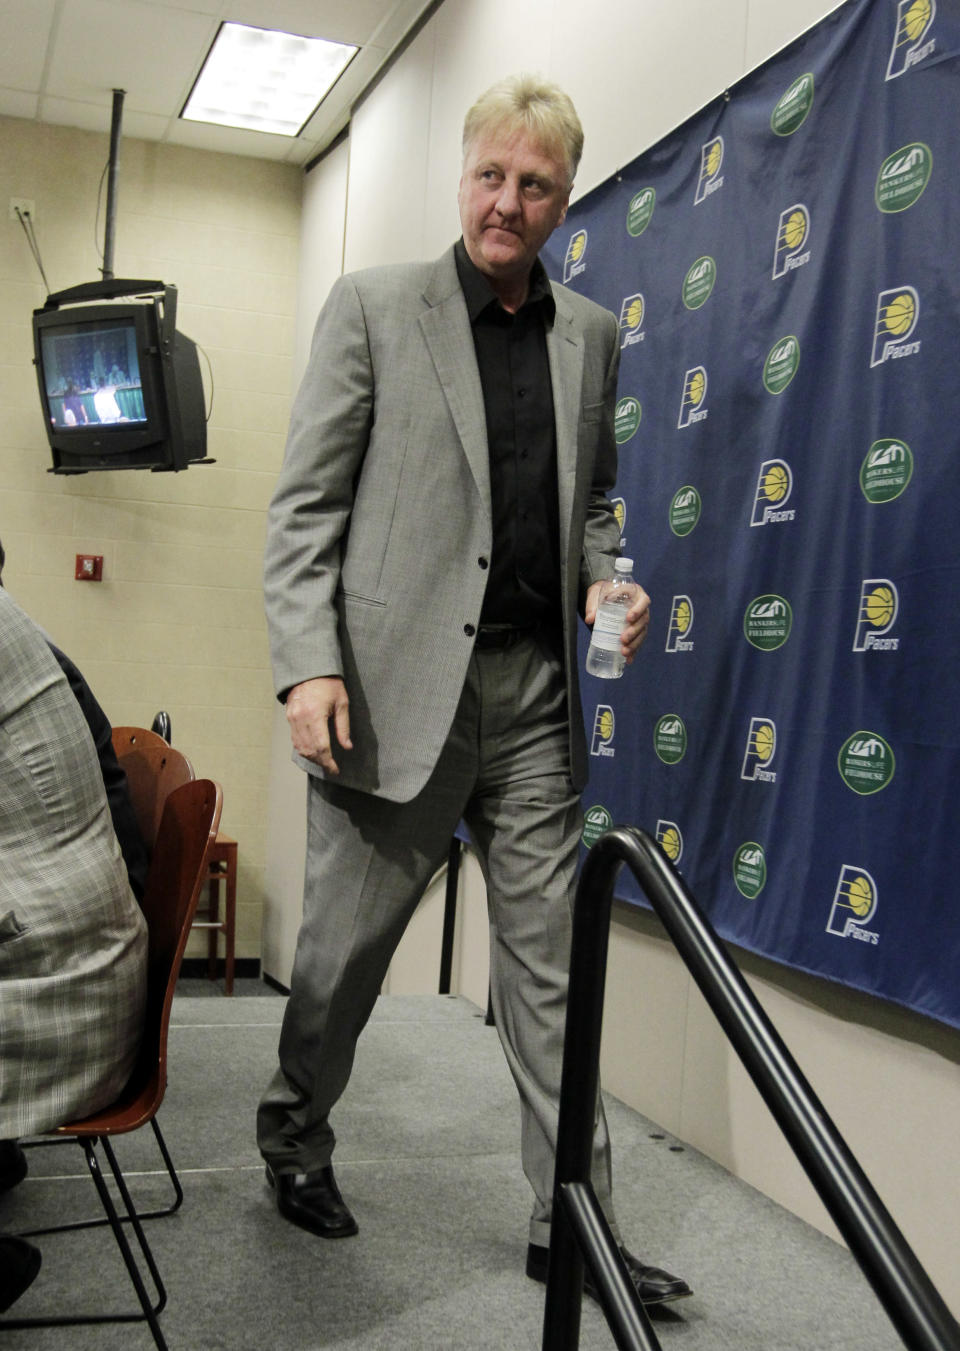 Larry Bird leaves the stage after announcing that he is stepping down as president of the Indiana Pacers at a news conference by the NBA basketball team in Indianapolis, Wednesday, June 27, 2012. Donnie Walsh was named as president and Kevin Pritchard as general manager. (AP Photo/Michael Conroy)